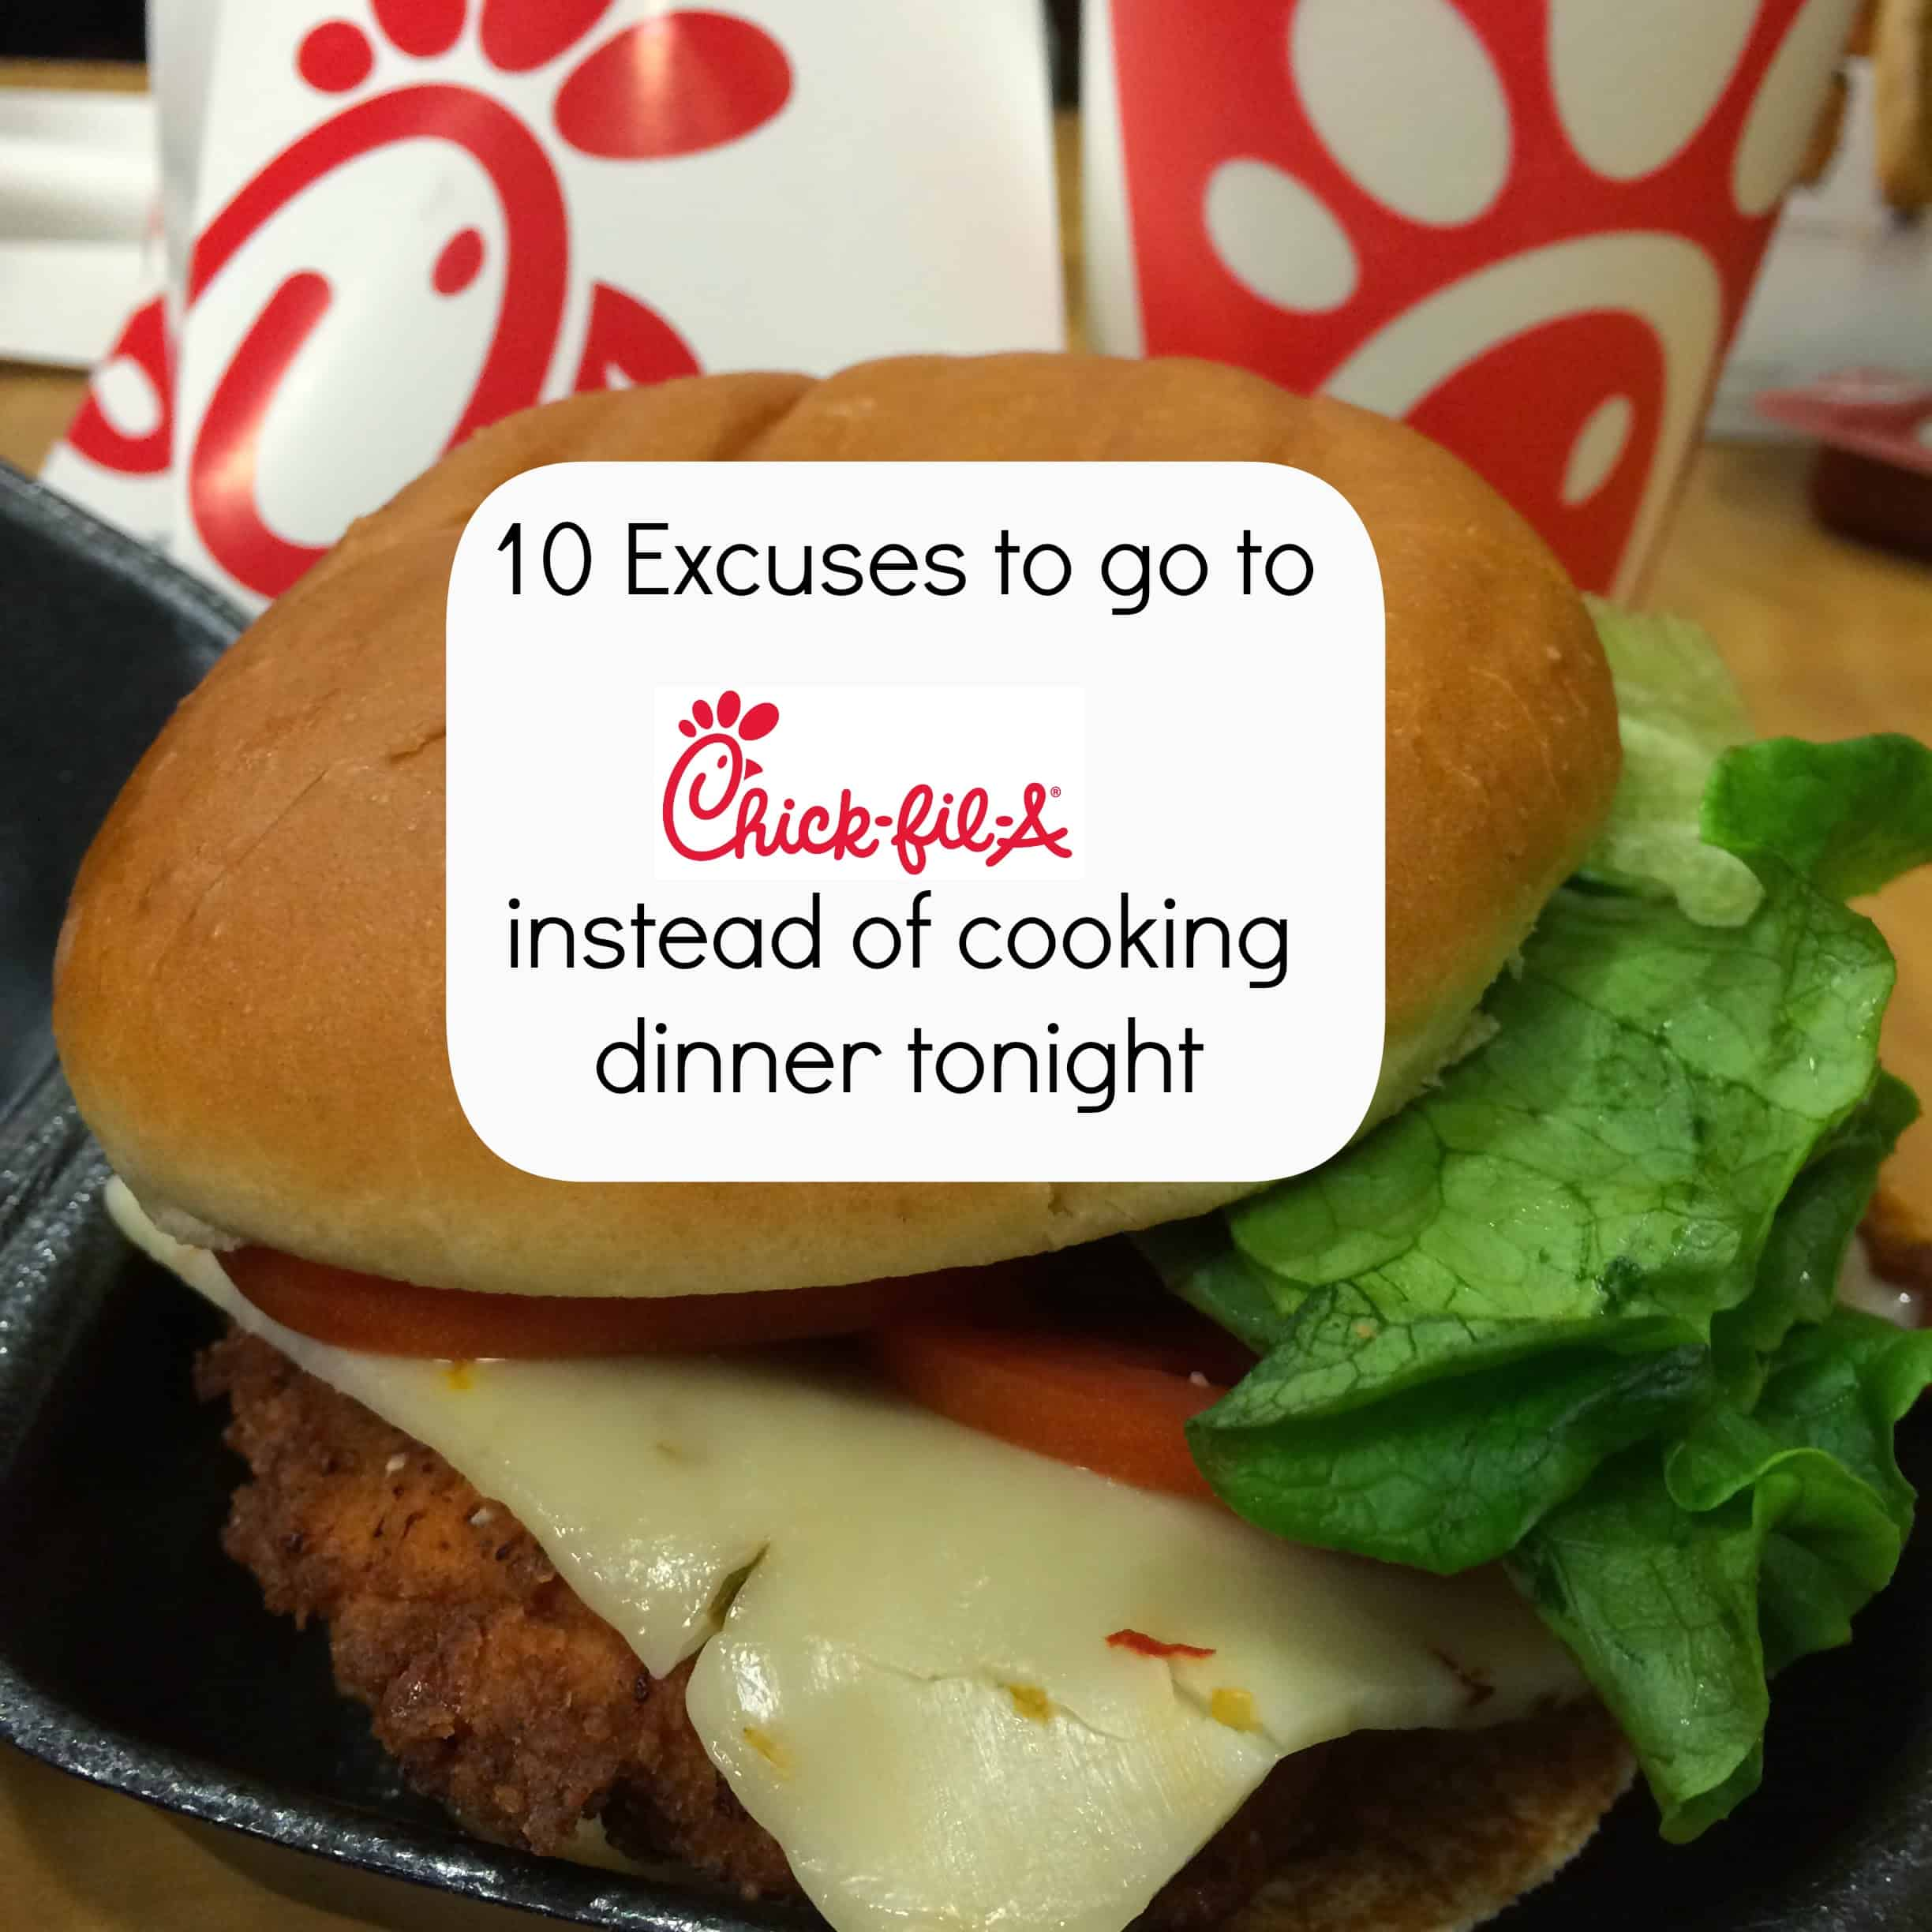 10 Excuses To Go To Chick-fil-A Instead Of Cooking Dinner